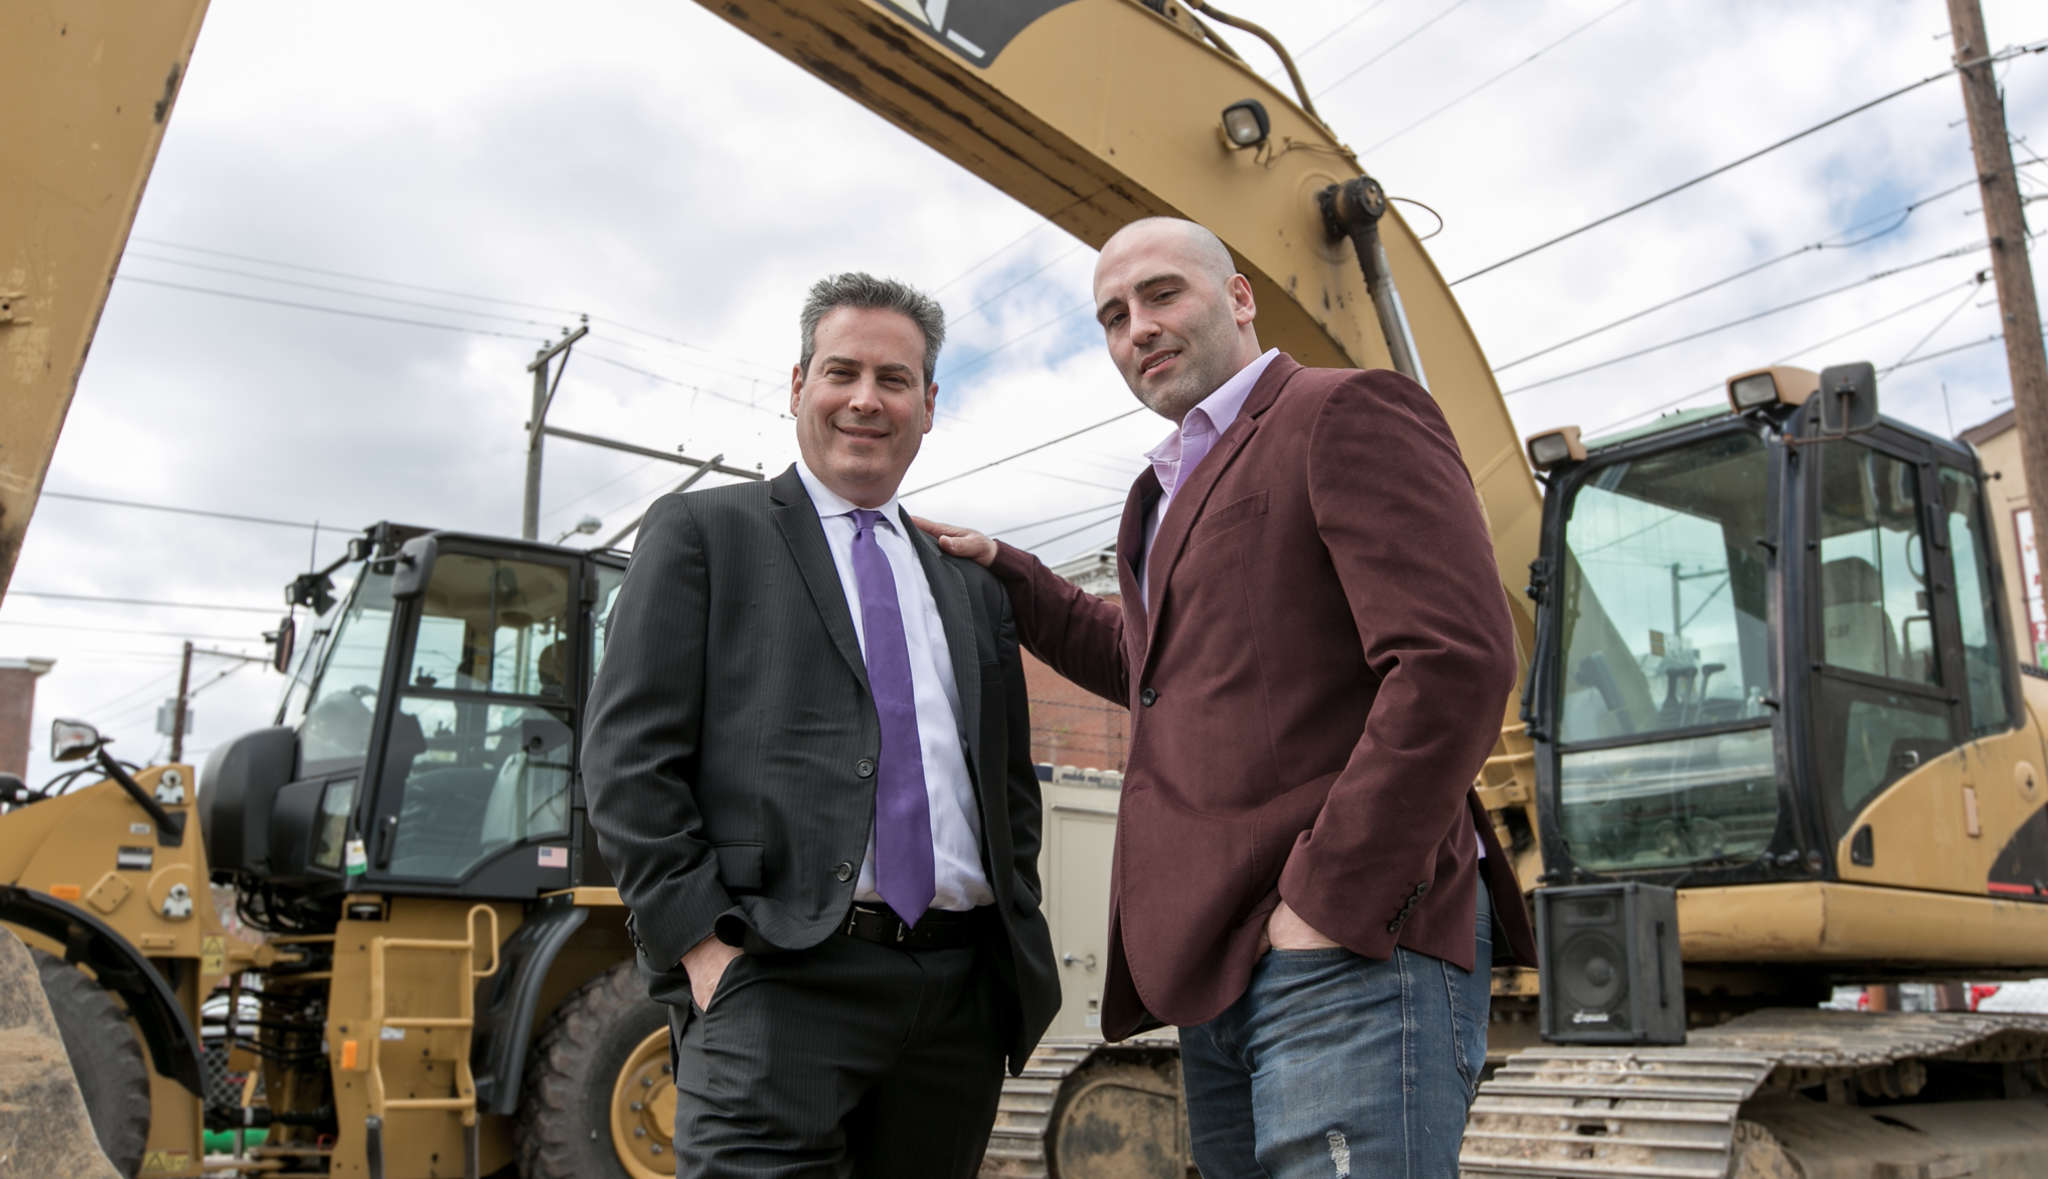 Sean Schellenger (right) and Sean Frankel, whose project includes the construction of 45 homes near Girard Avenue.